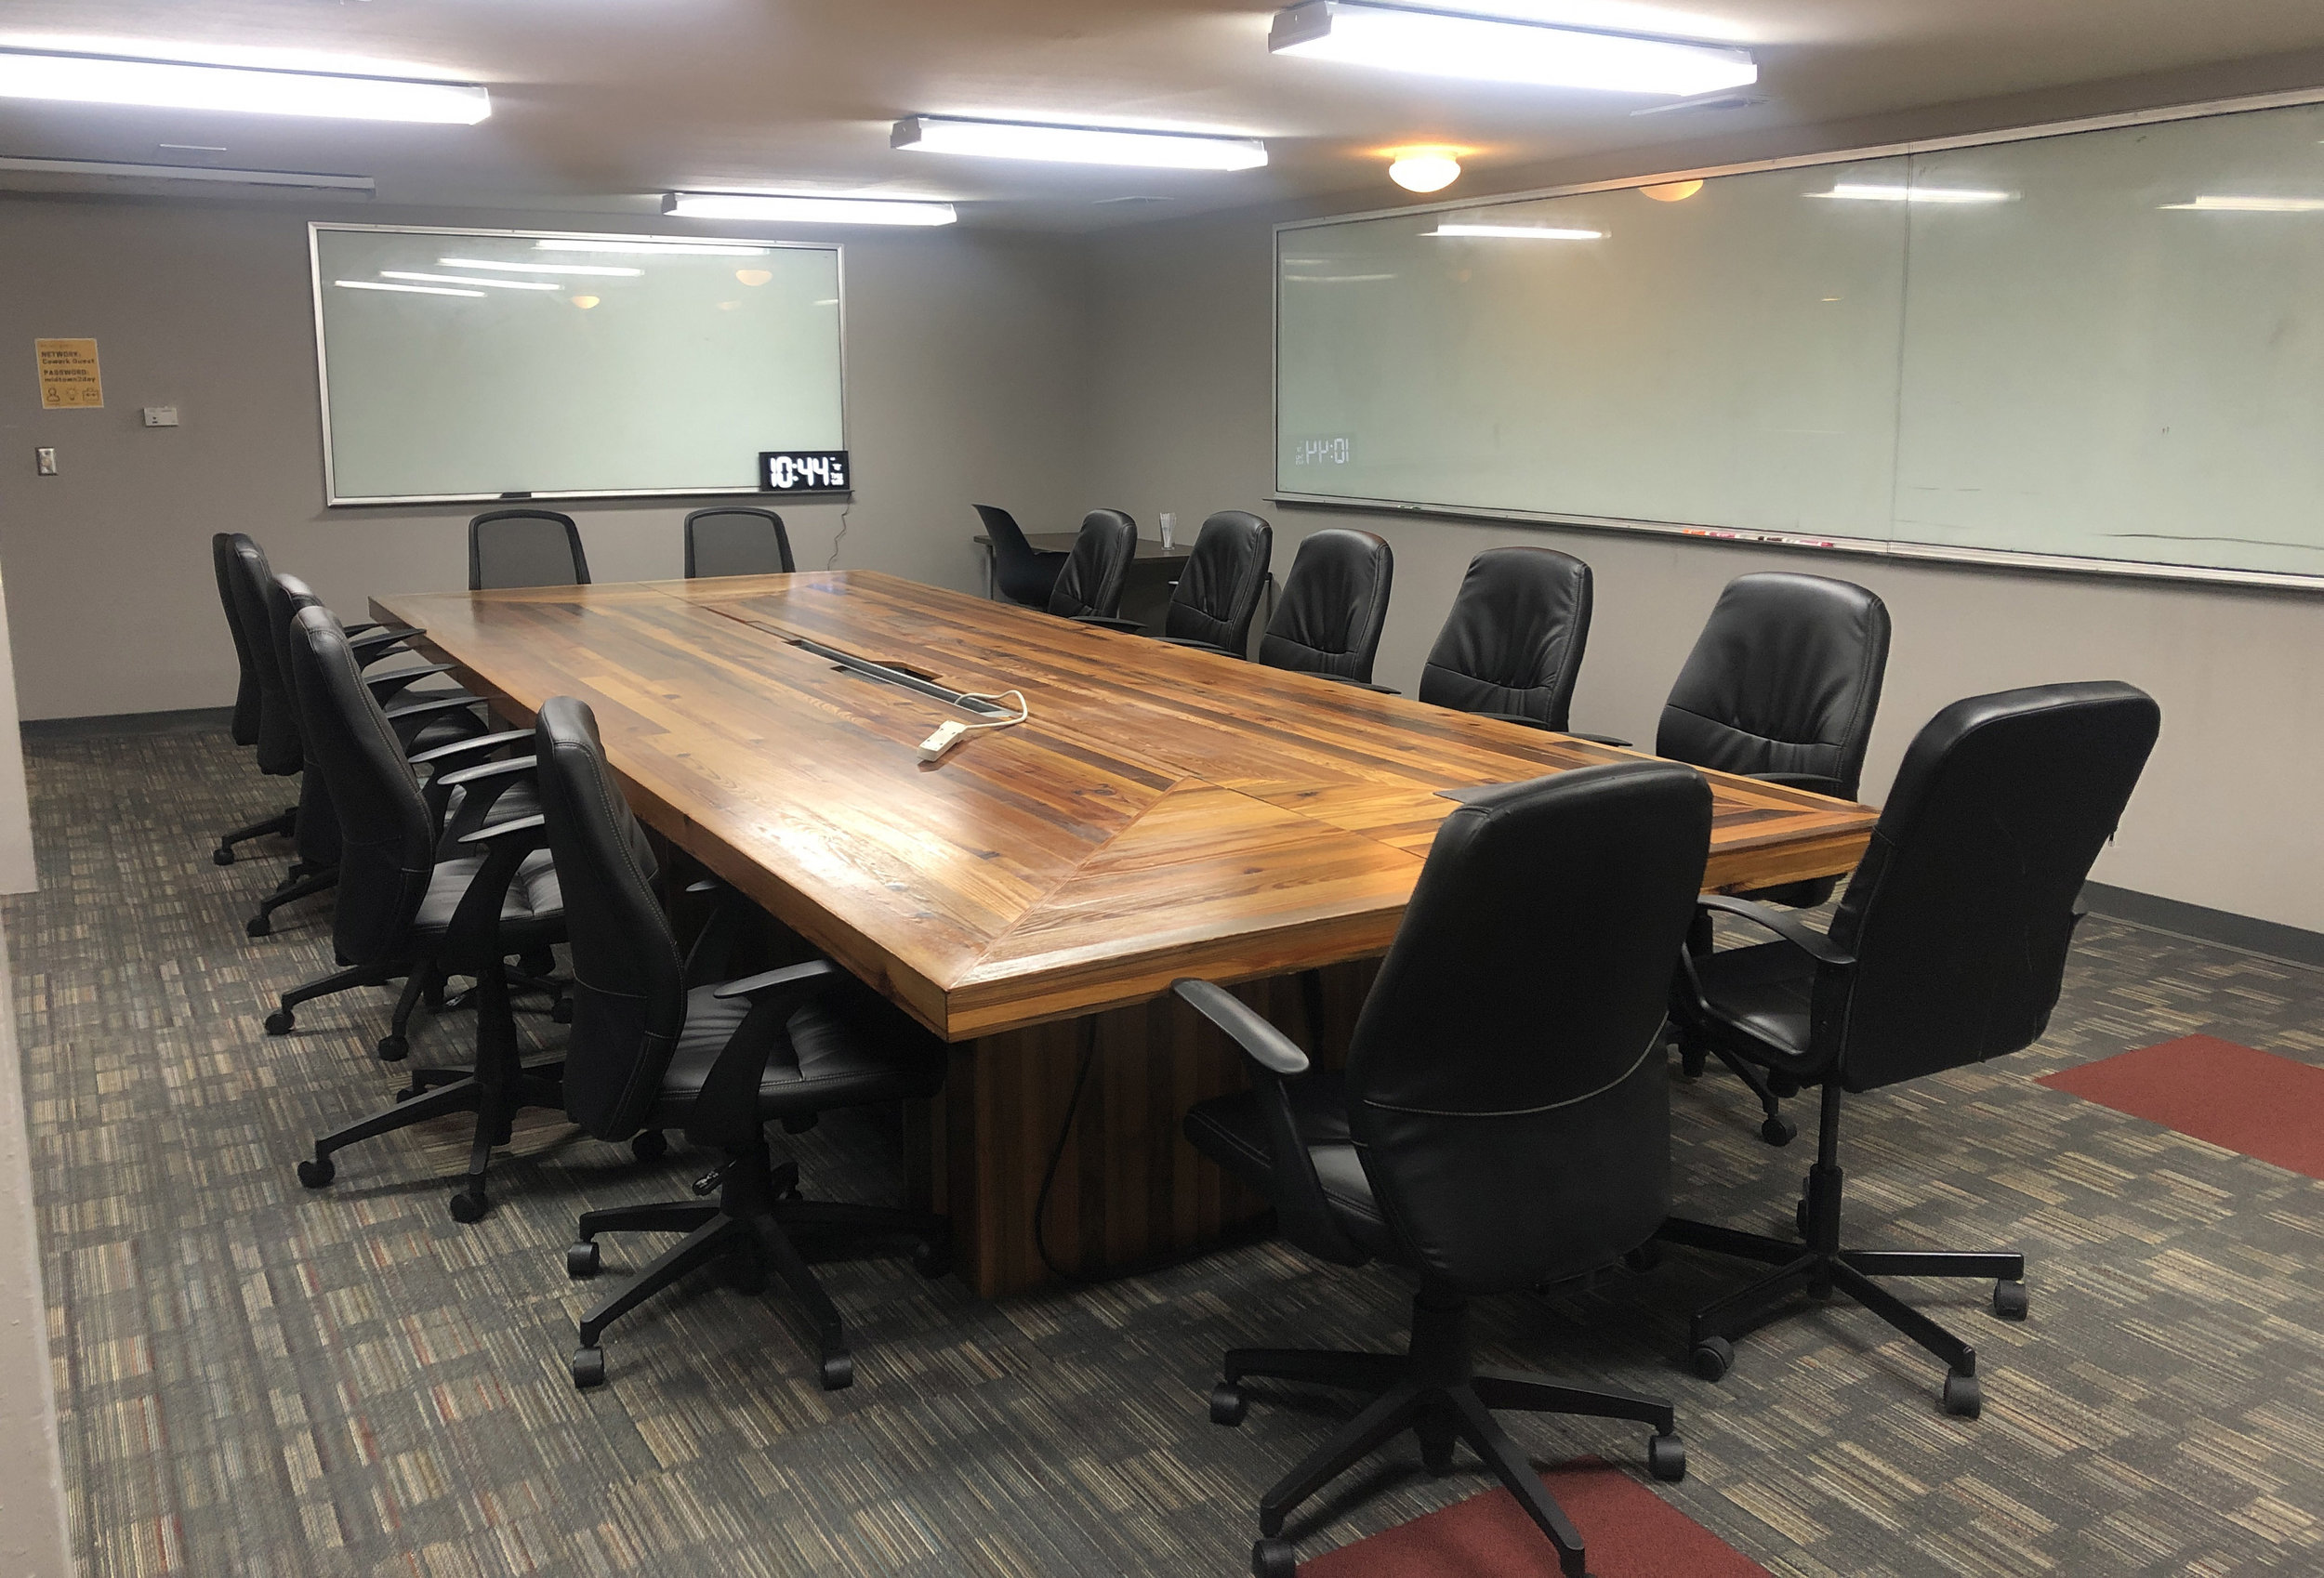 Host your meetings here! - Epicenter has four meeting spaces tailored to fit meetups of multiple sizes. Check out our Meeting room FAQ to learn more about reserving a space.